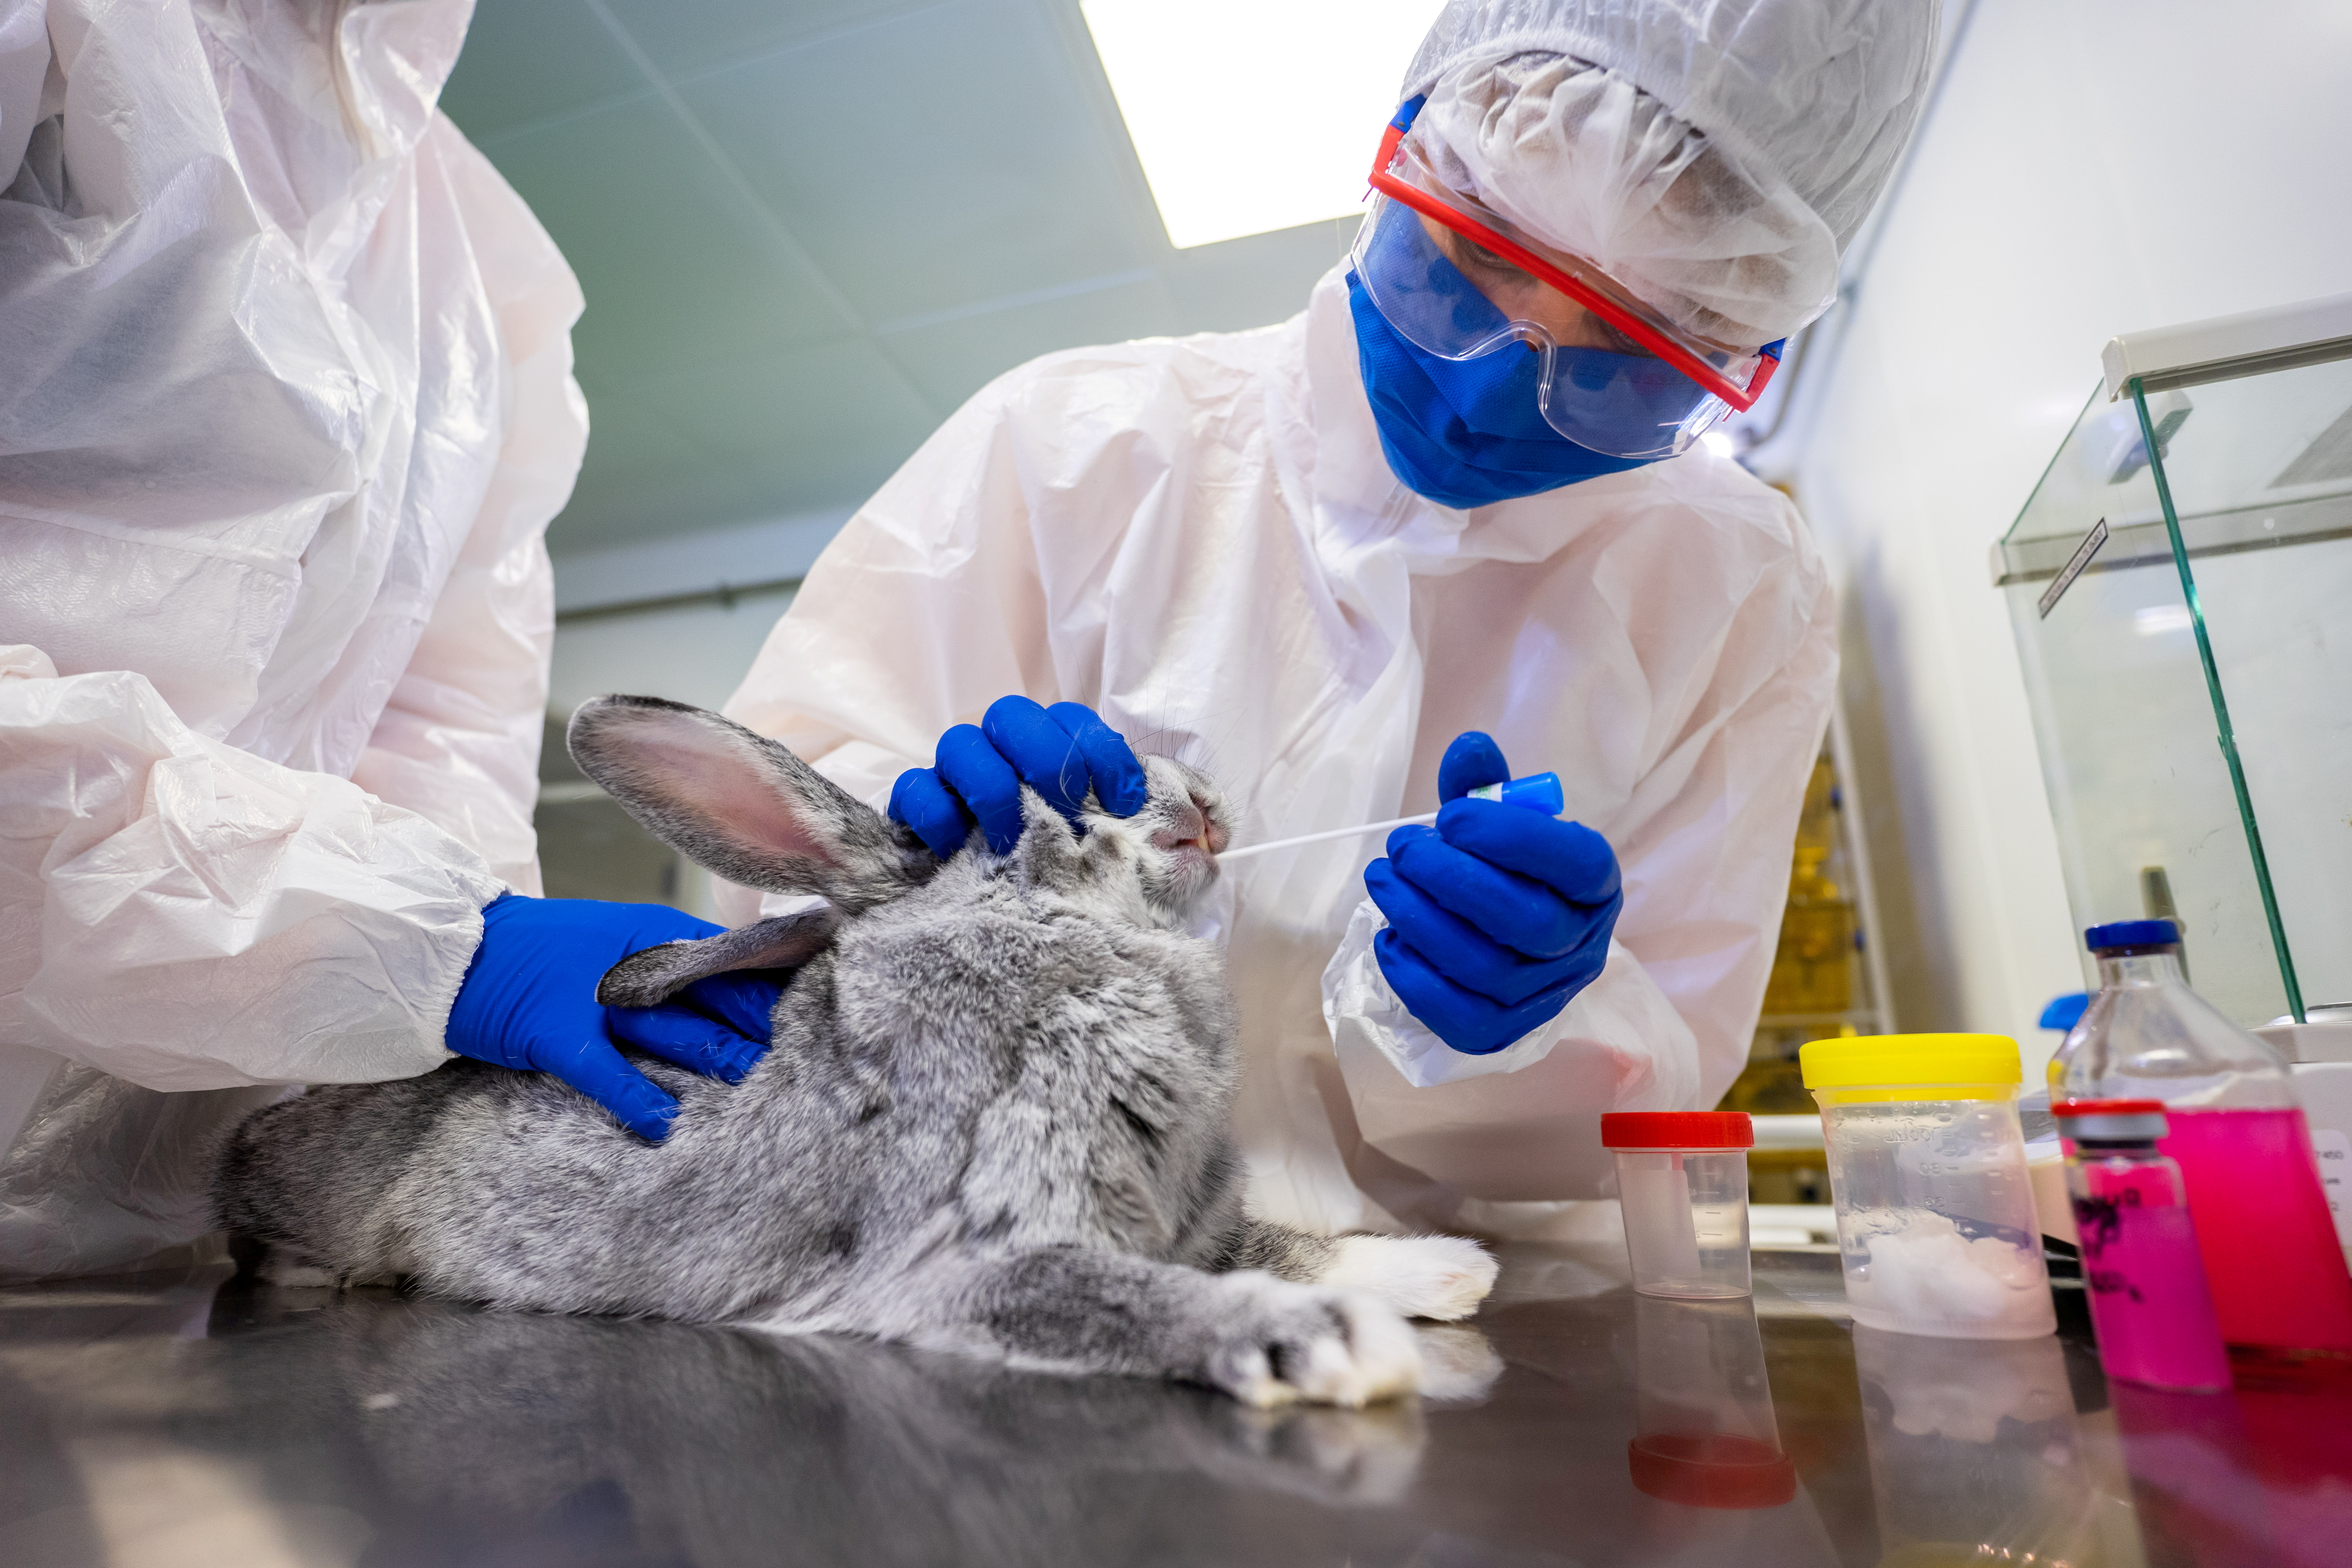 A specialist collects a swab sample from a rabbit at a laboratory of the Federal centre for animal health during the development of a vaccine against the coronavirus disease (COVID-19) for animals, in Vladimir, Russia December 9, 2020. VETANDLIFE.RU/Handout via REUTERS